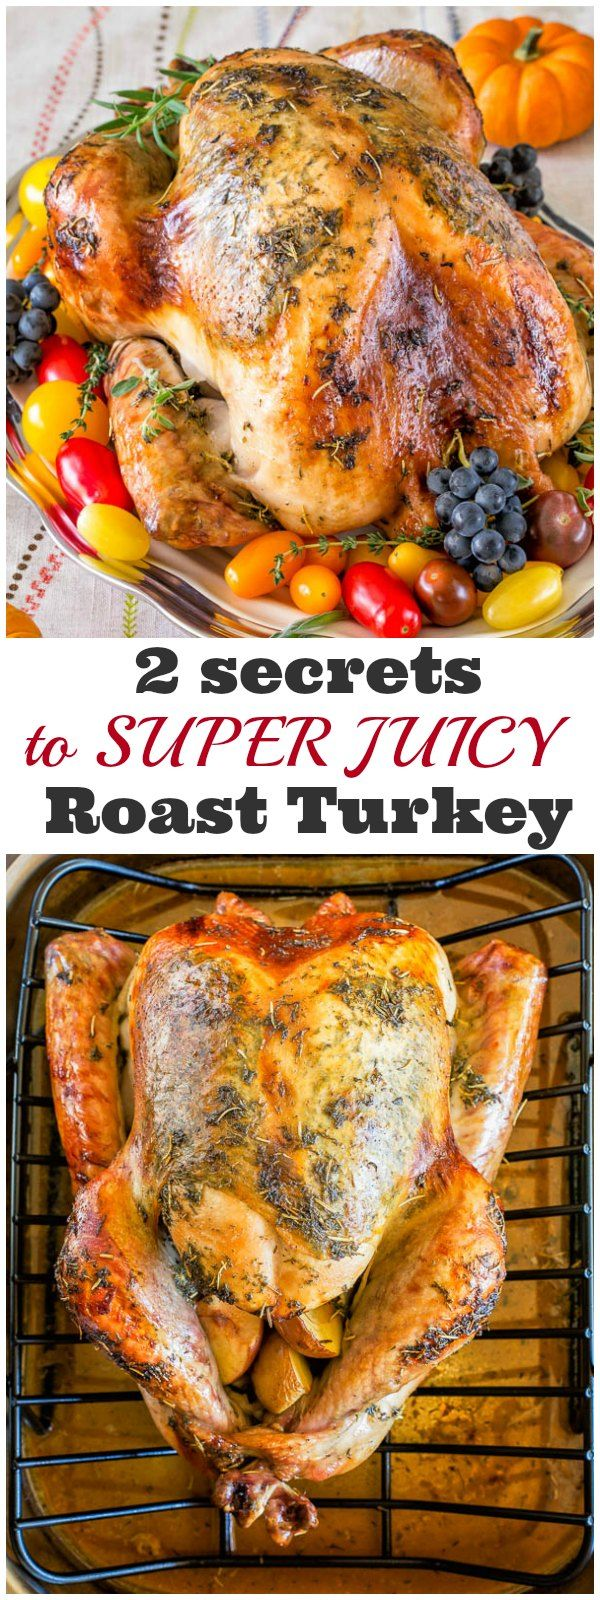 Sharing my secret to super juicy no brine roast turkey recipe that will make you a hero of your Thanksgiving dinner. It involves a bottle of champagne and melted butter! Seriously, unless you want to, you really don't have to brine your bird any more. #Thanksgiving #ThanksgivingMenu #ThanksgivingRecipes #RoastTurkey #howtoroastawholeturkey #wholeturkey